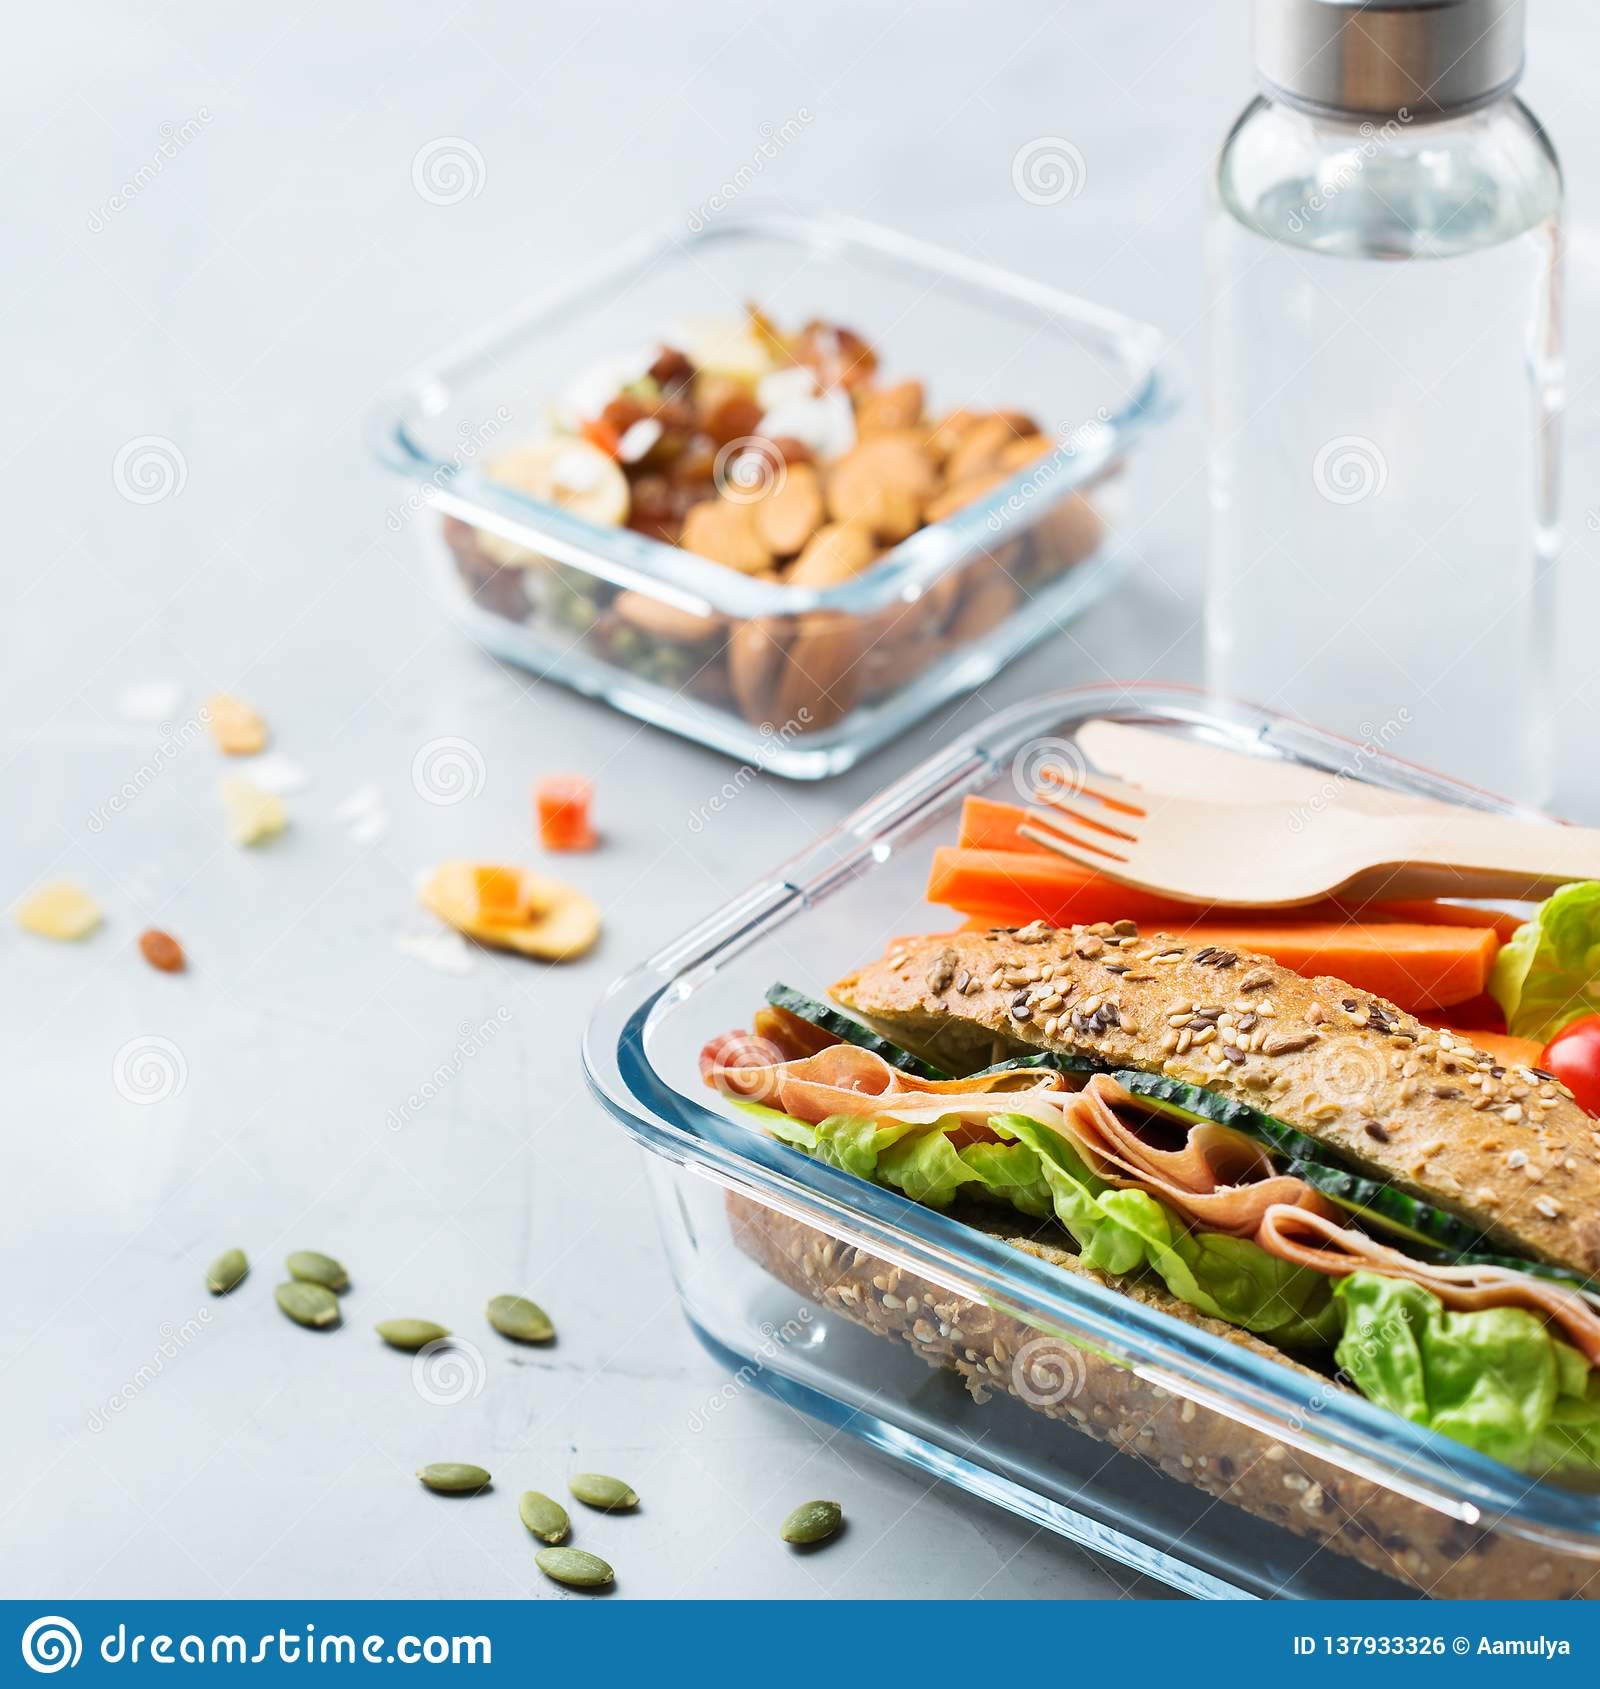 Lunch Box With Sandwich Fruits Vegetables Nut Mix And Water Stock Photo Image Of Business Diet 137933326 Is that sandwich is sandwich while water is (uncountable) a chemical, found at room temperature and pressure as a clear liquid, having as a verb water is. dreamstime com